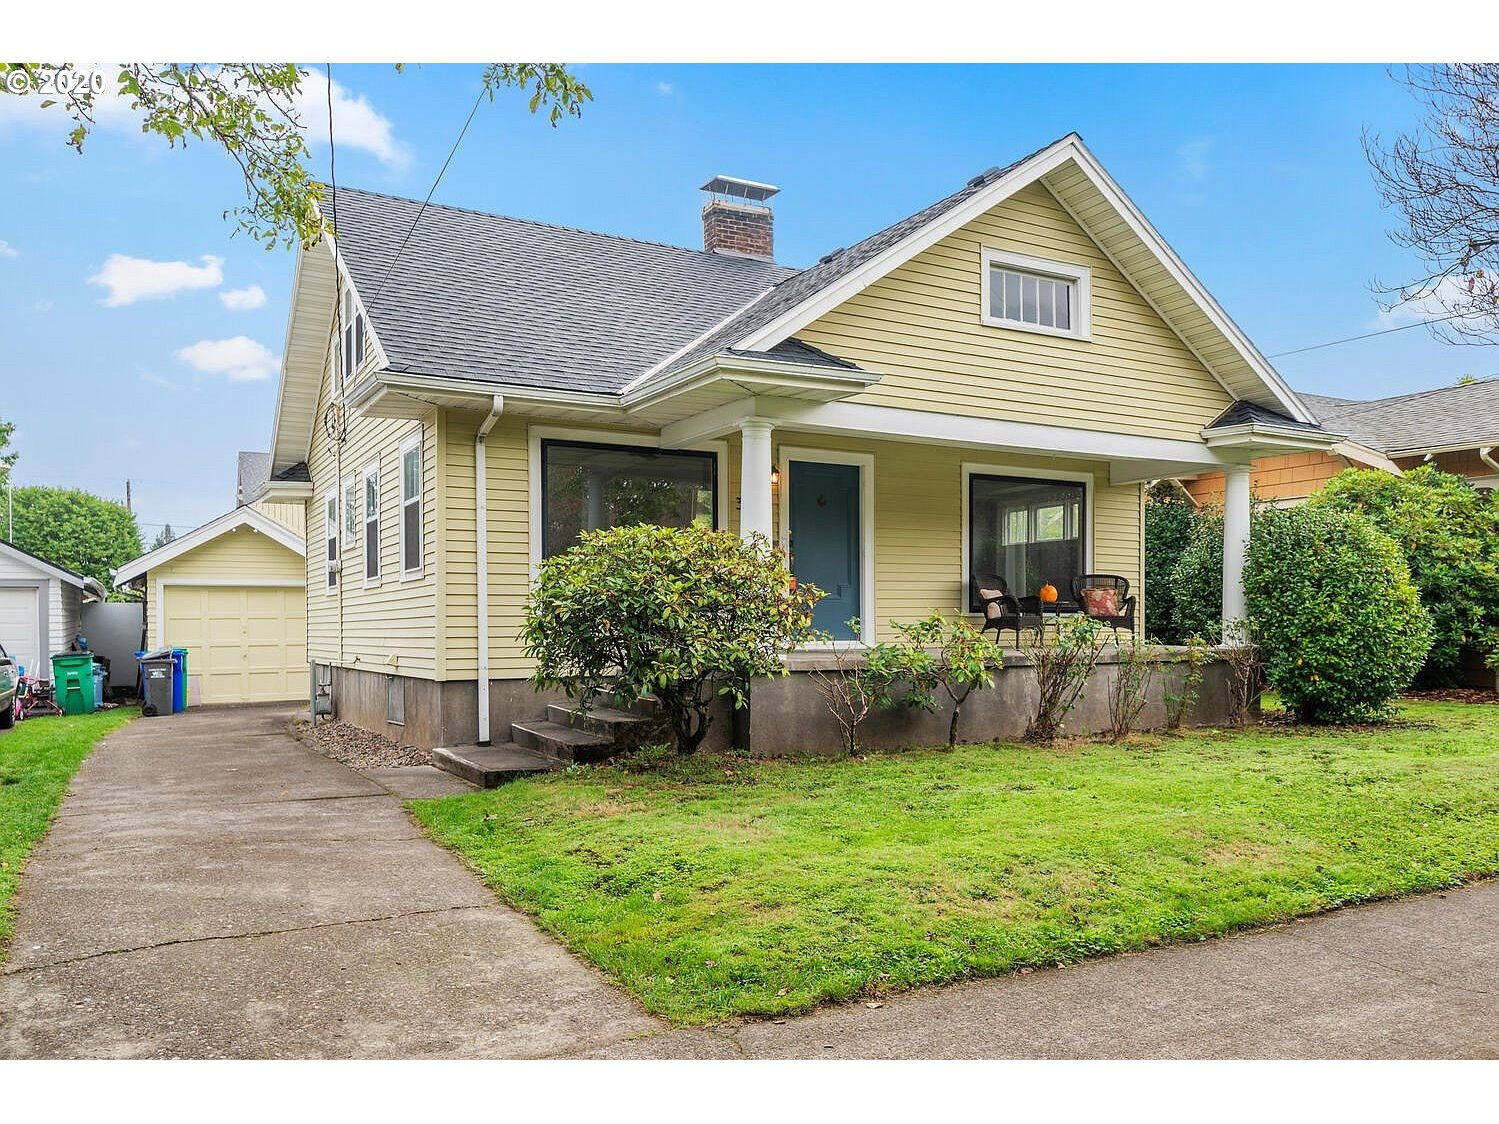 Click On Vtour For 3D Walkthrough. Charming Updated Crasftman w Spacious Front Yard & Covered Porch. 4 Bedrooms & 2 full baths! Newer roof & fresh interior paint. Hardwood flooring on main. High eff gas furnace & hw heater (2017). Open layout features living & dining decorated w picture windows adds tons of light. Wood-burning fireplace in living. Updated kitchen features gas range w convection oven & light-filled dining nook. Loft & 2 spare beds up. Fully fenced backyard & highly rated schools! [Home Energy Score = 6. HES Report at https://rpt.greenbuildingregistry.com/hes/OR10187439]